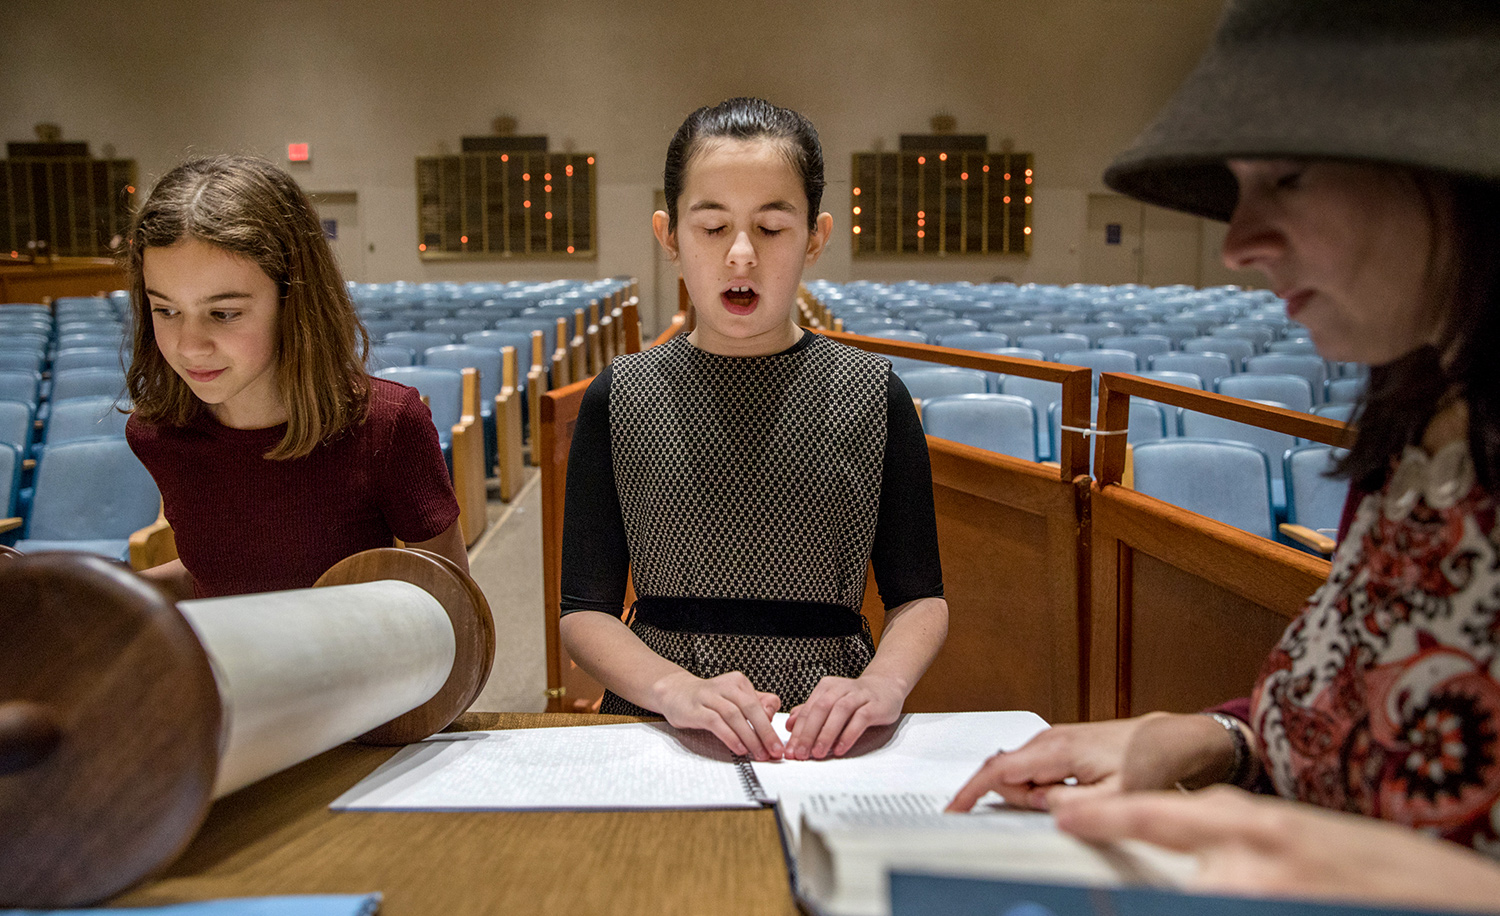 Batya Sperling Milner, who is blind, practices reading Torah with her aunt and a friend. Evelyn Hockstein/For The Washington Post via Getty Images.